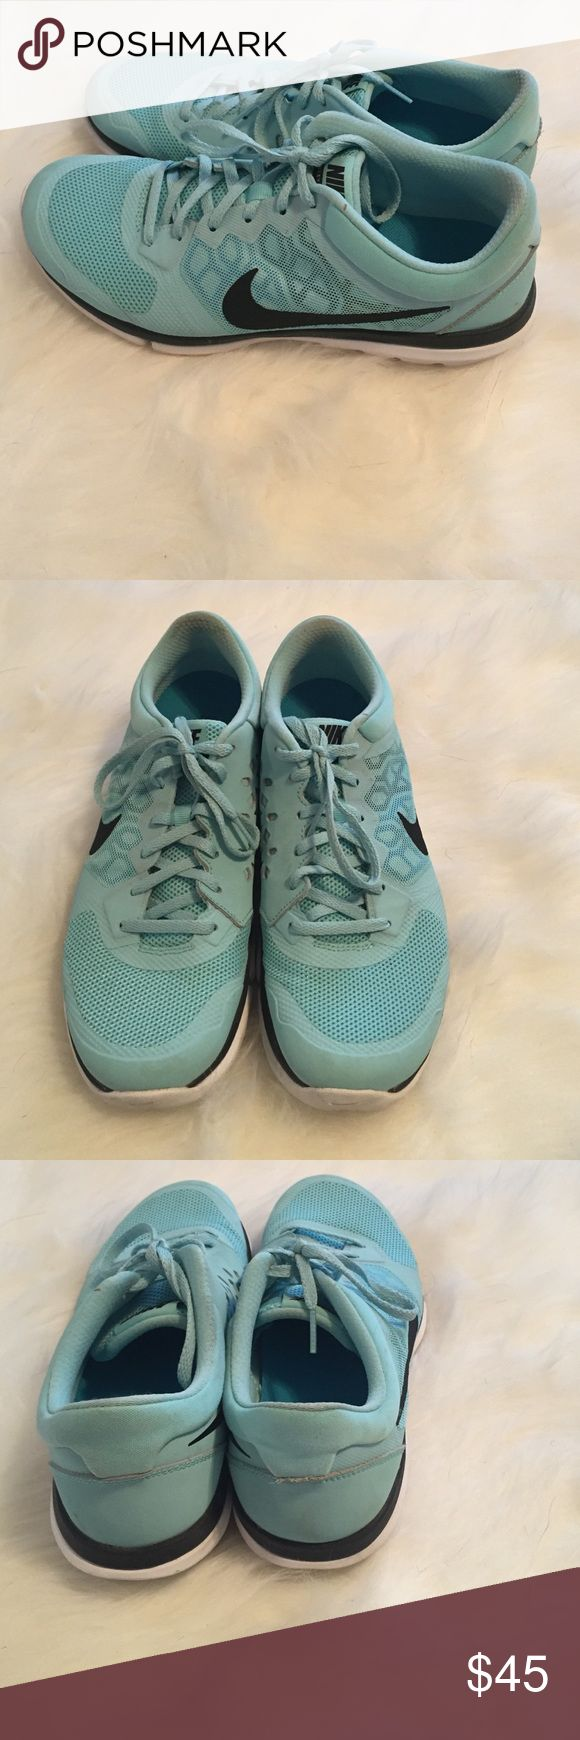 Nike Tiffany blue flex run sneakers These are a pair of Nike flex run sneakers.  They are in the color Tiffany blue.  They are a size 10 and run true to size. Nike Shoes Sneakers